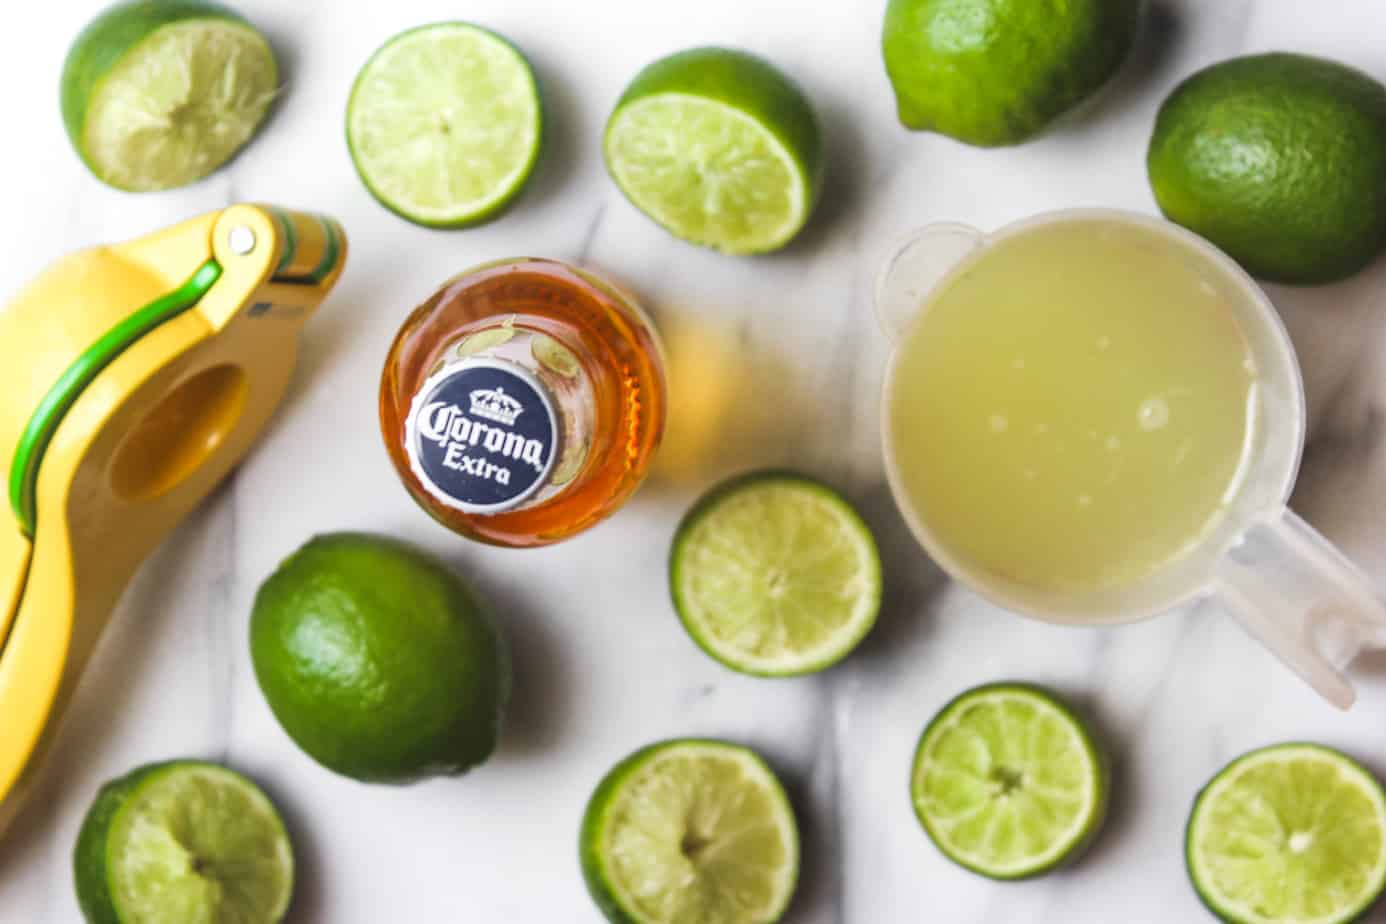 lime juice, limes and corona extra on a marble platter